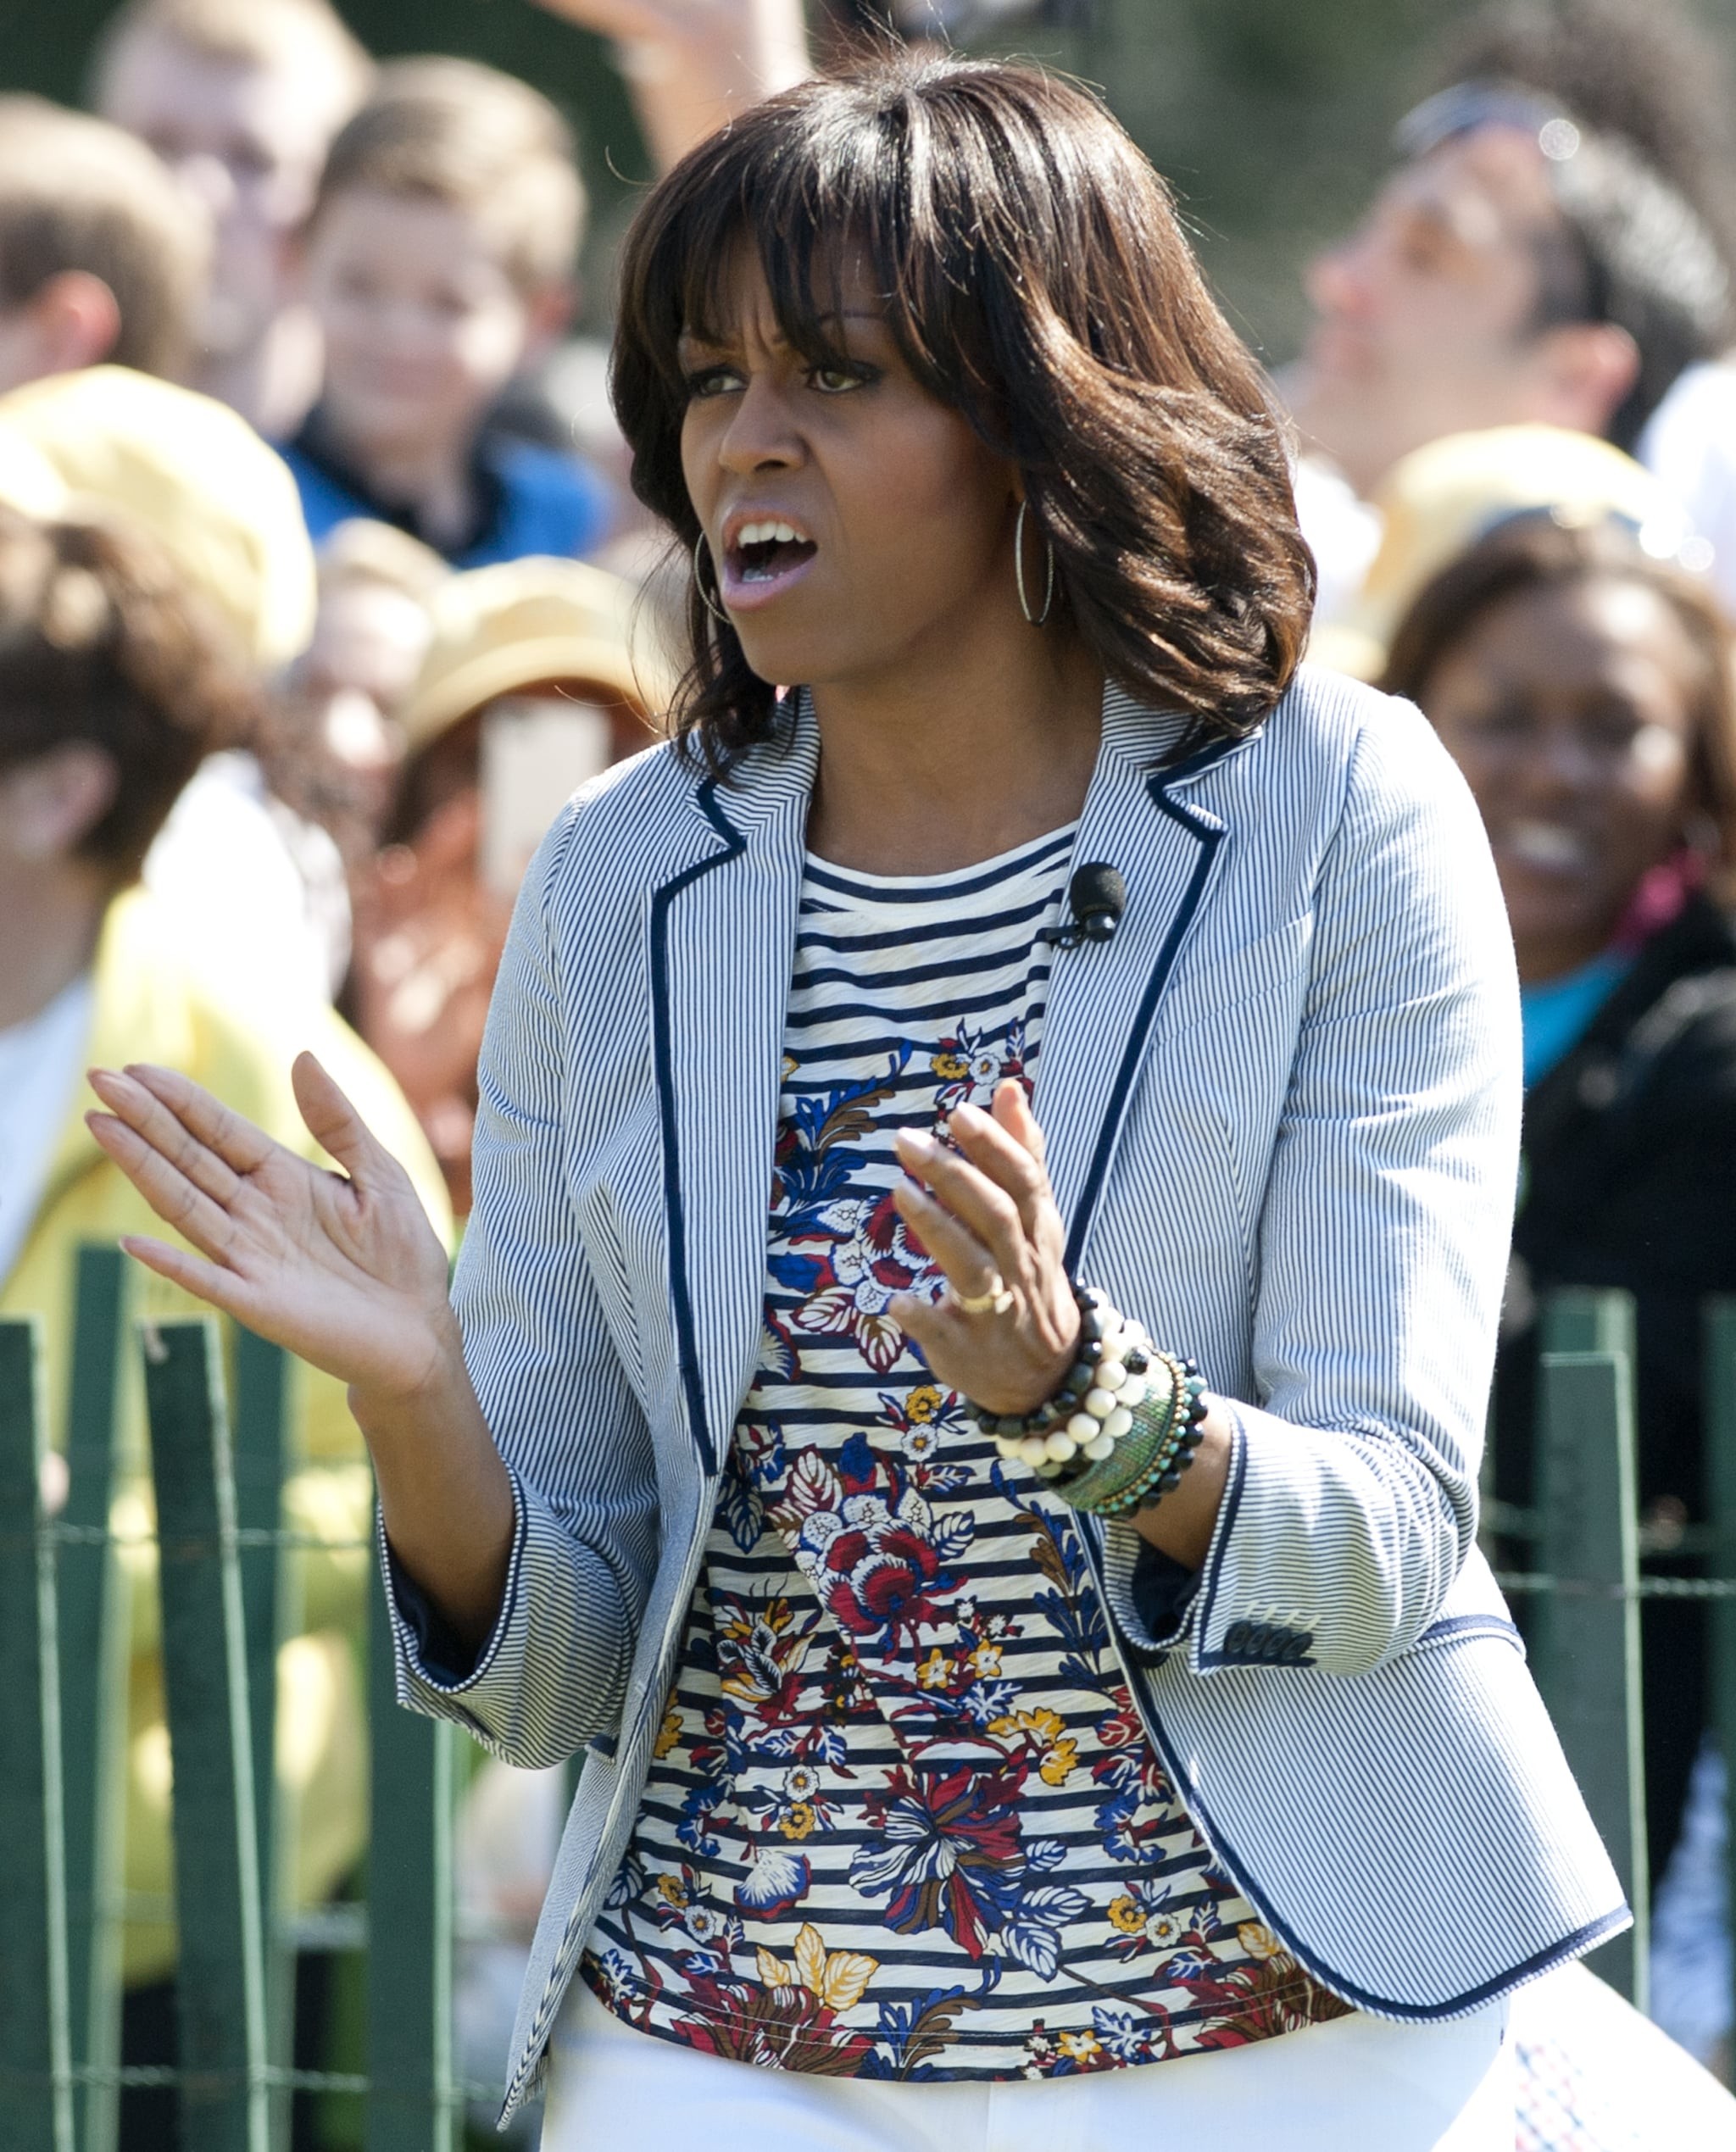 One more look at the cool juxtaposition of her striped floral t-shirt by J.Crew mixed with a seersucker blazer by Talbots.